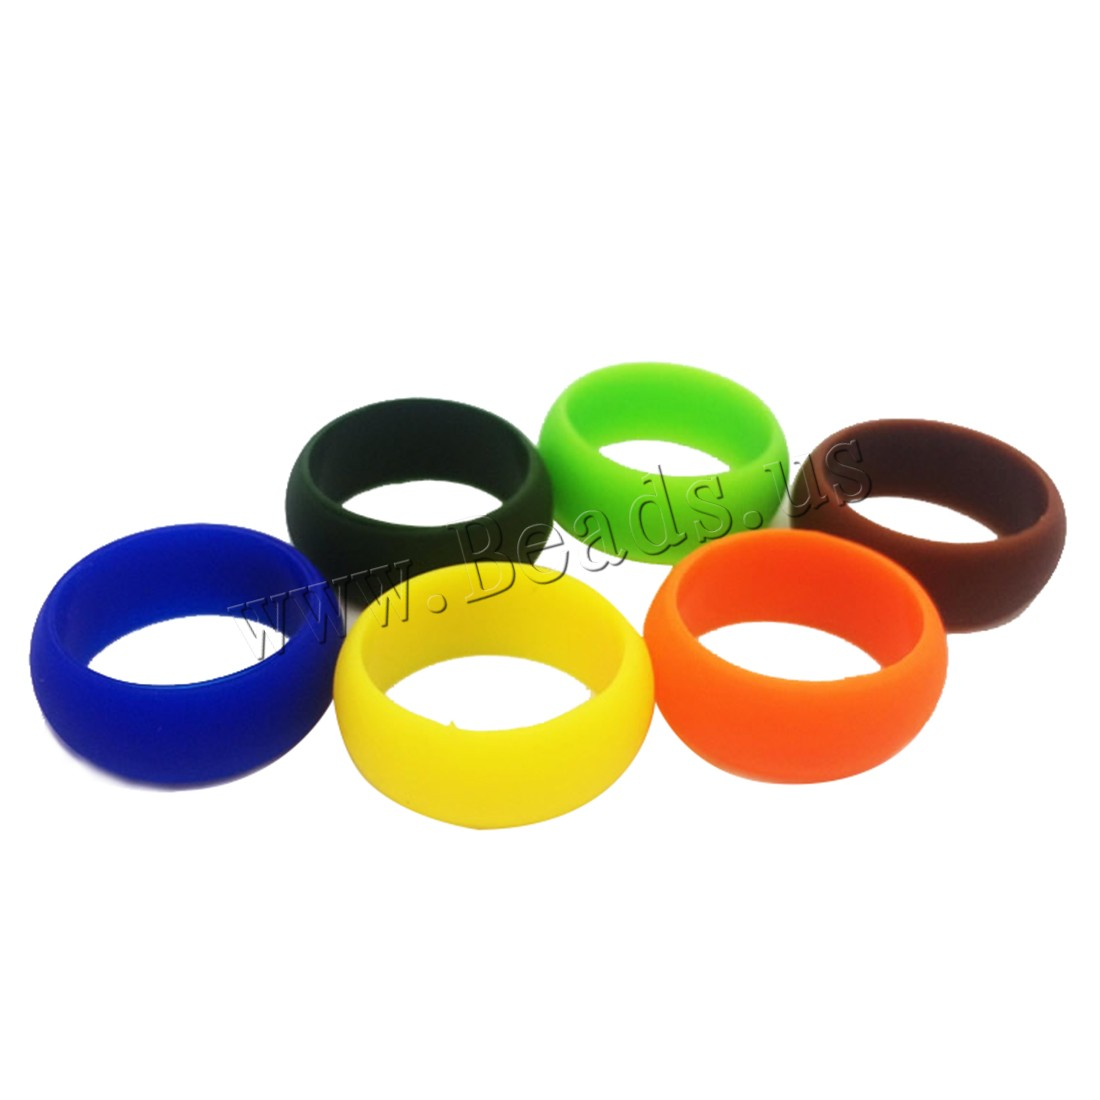 Buy Unisex Finger Ring Silicone mixed ring size mixed colors 12x2mm US Ring Size:6-10 100PCs/Bag Sold Bag